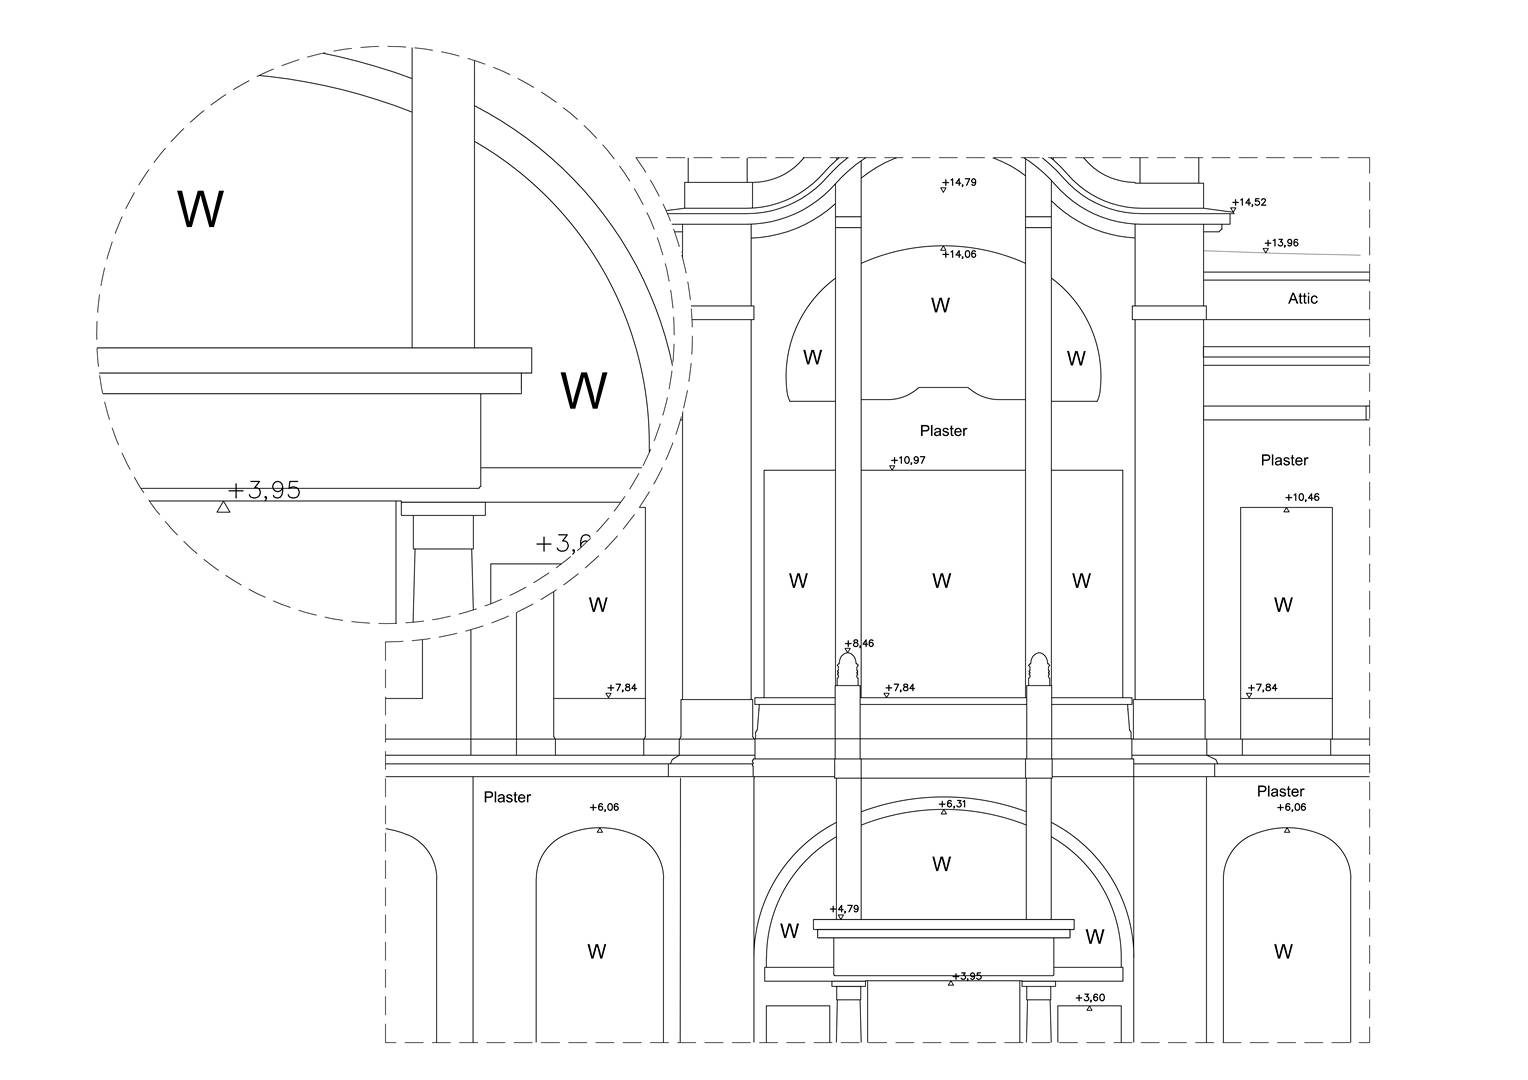 Elevation drawing level of detail 1